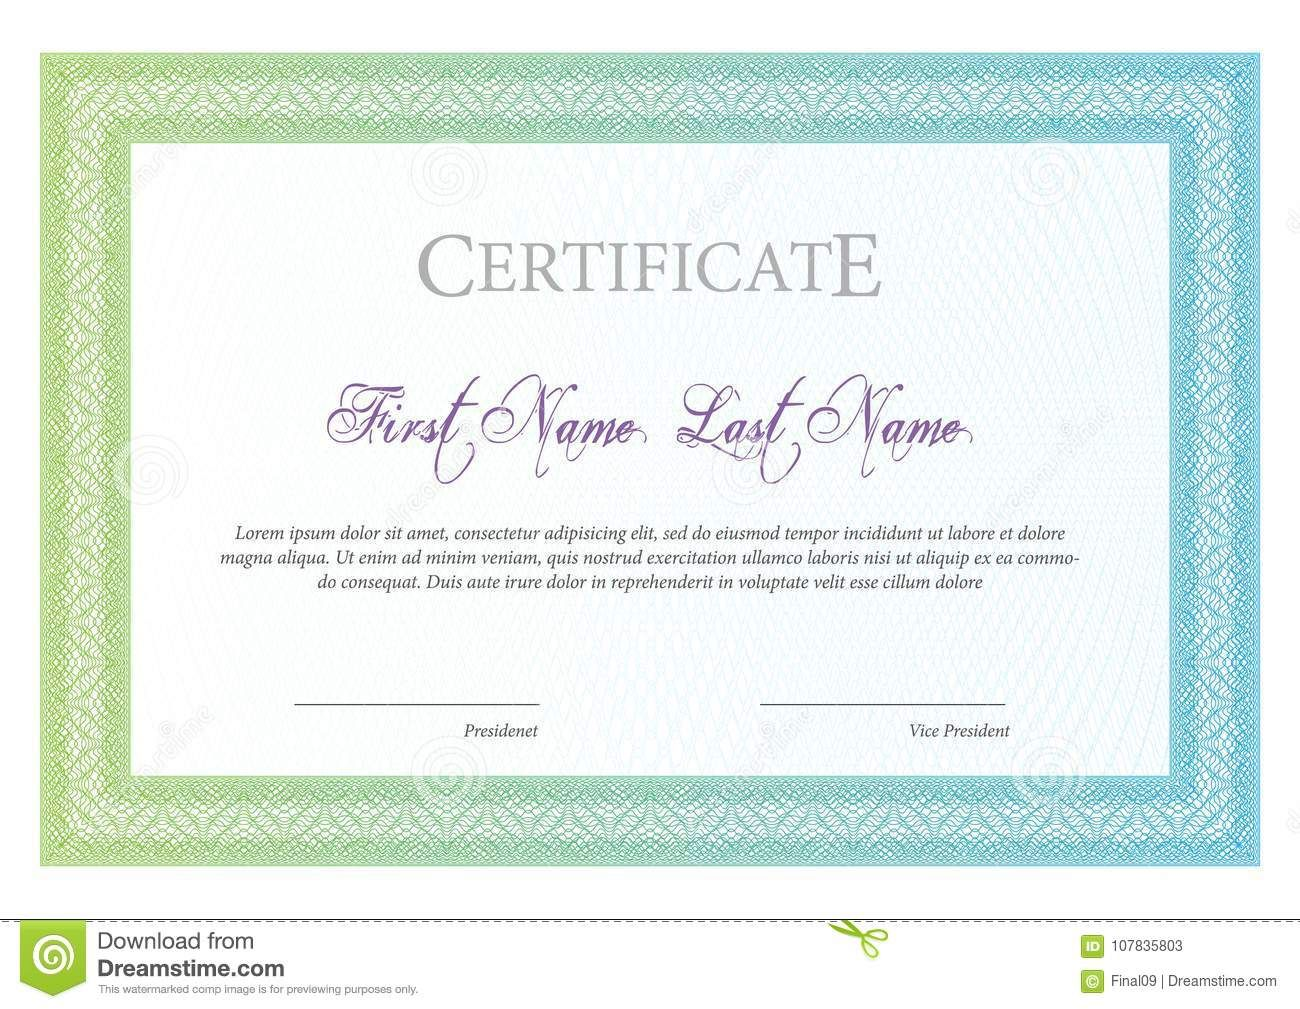 Certificate Template Diploma Currency Border Stock Vector Throughout Tennis Gi Gift Certificate Template Certificate Templates Free Gift Certificate Template Open office gift certificate template